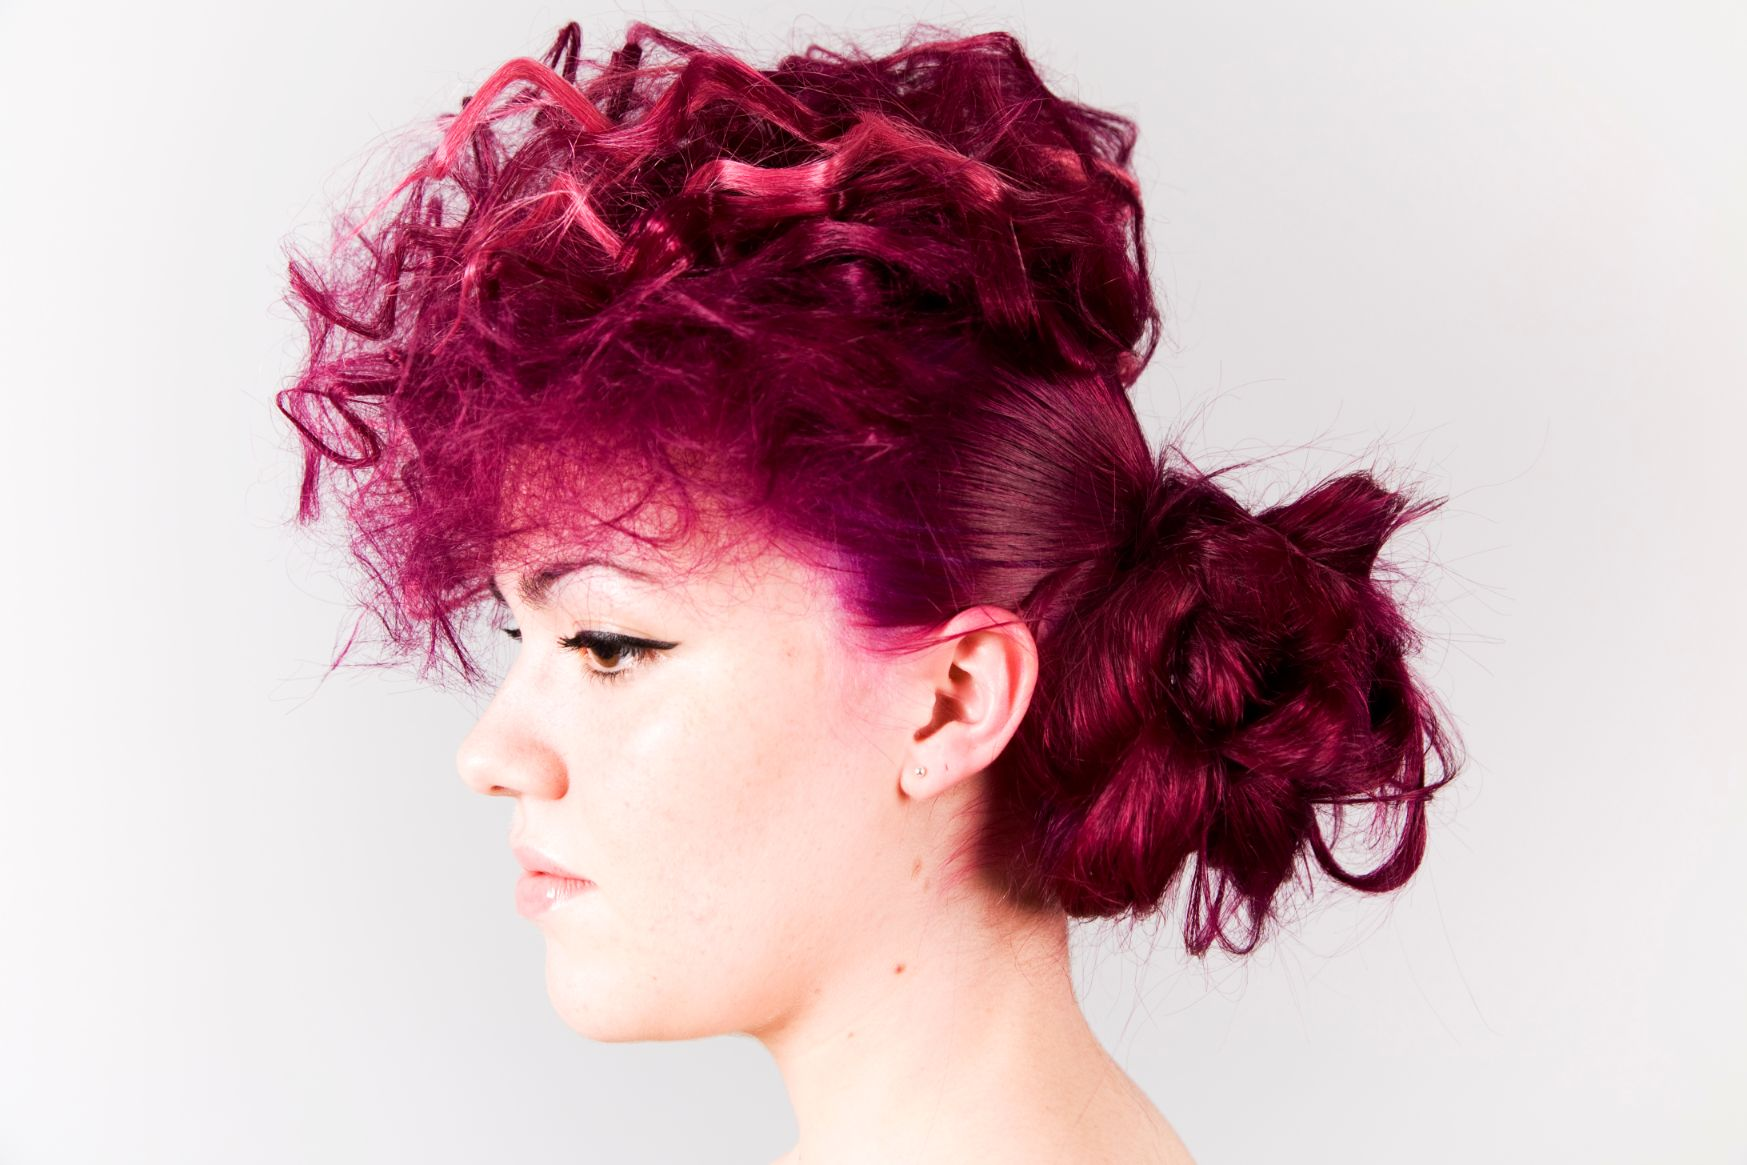 woman with red hair on upstyle